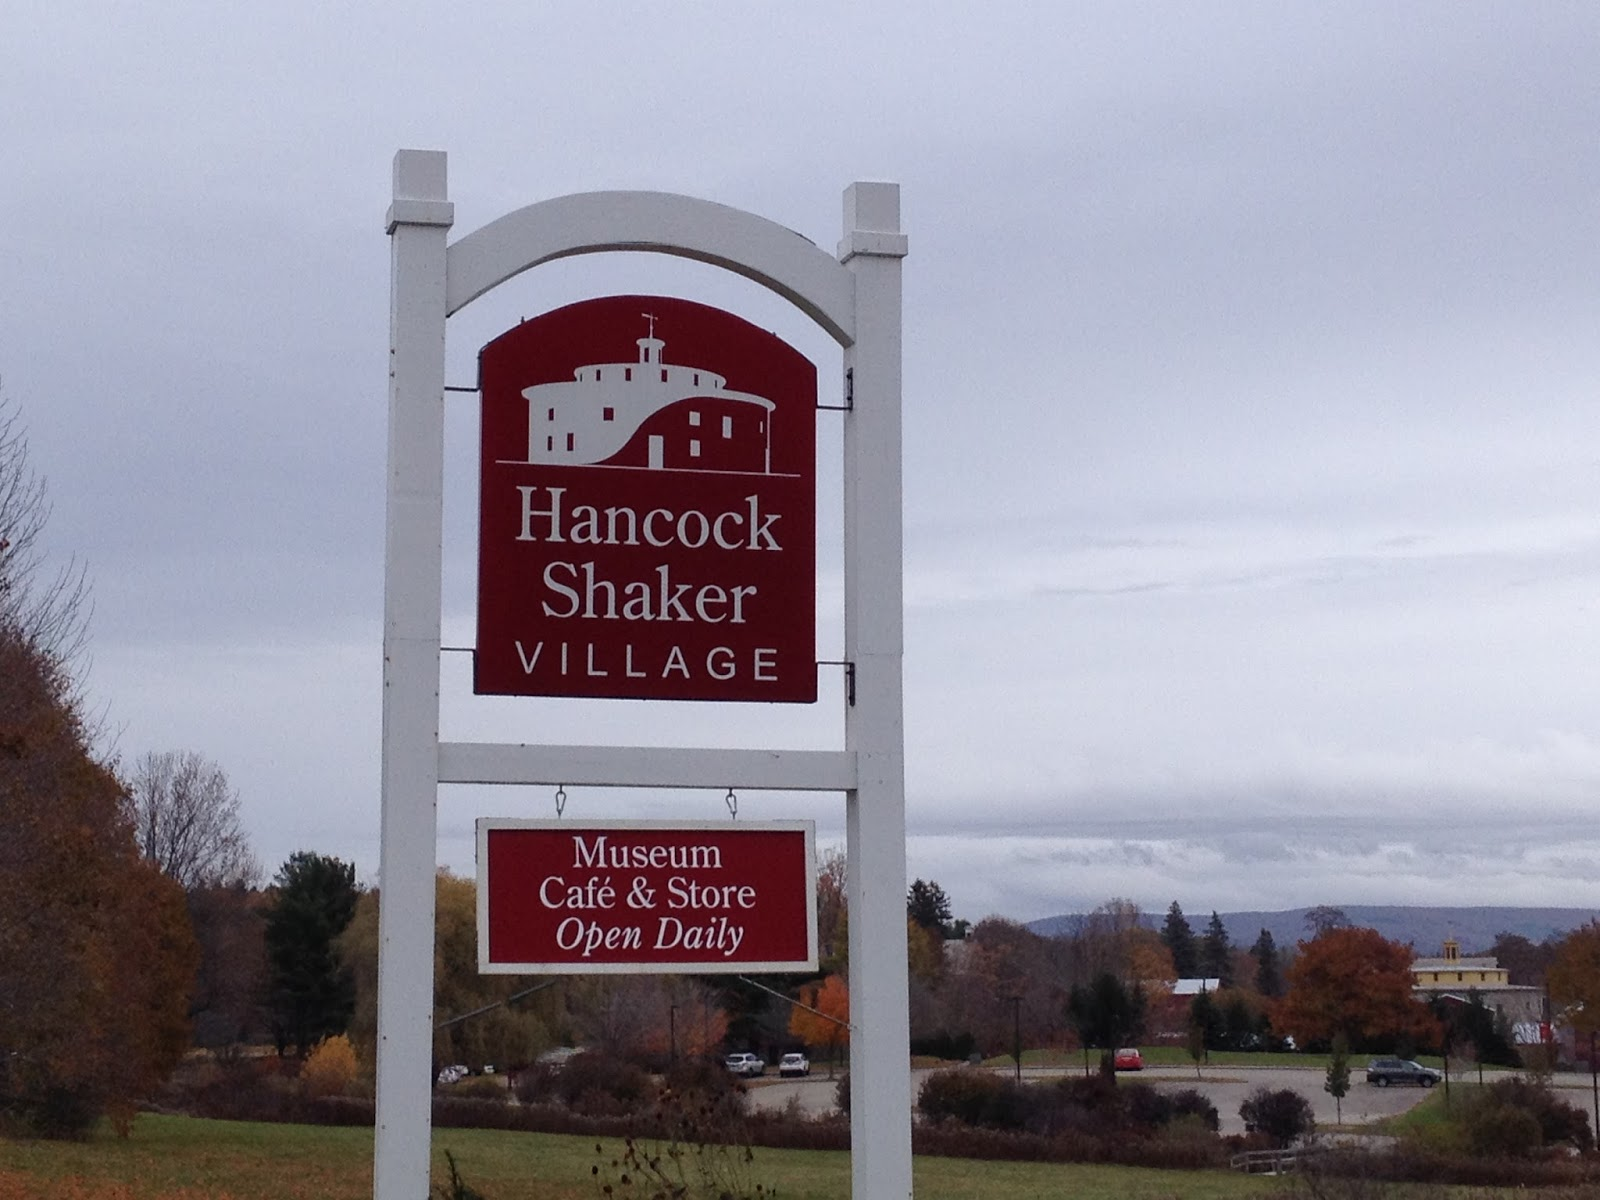 the shakers made their home here from the late 1780s until 1959 when the community had to sell the property due to dwindling numbers